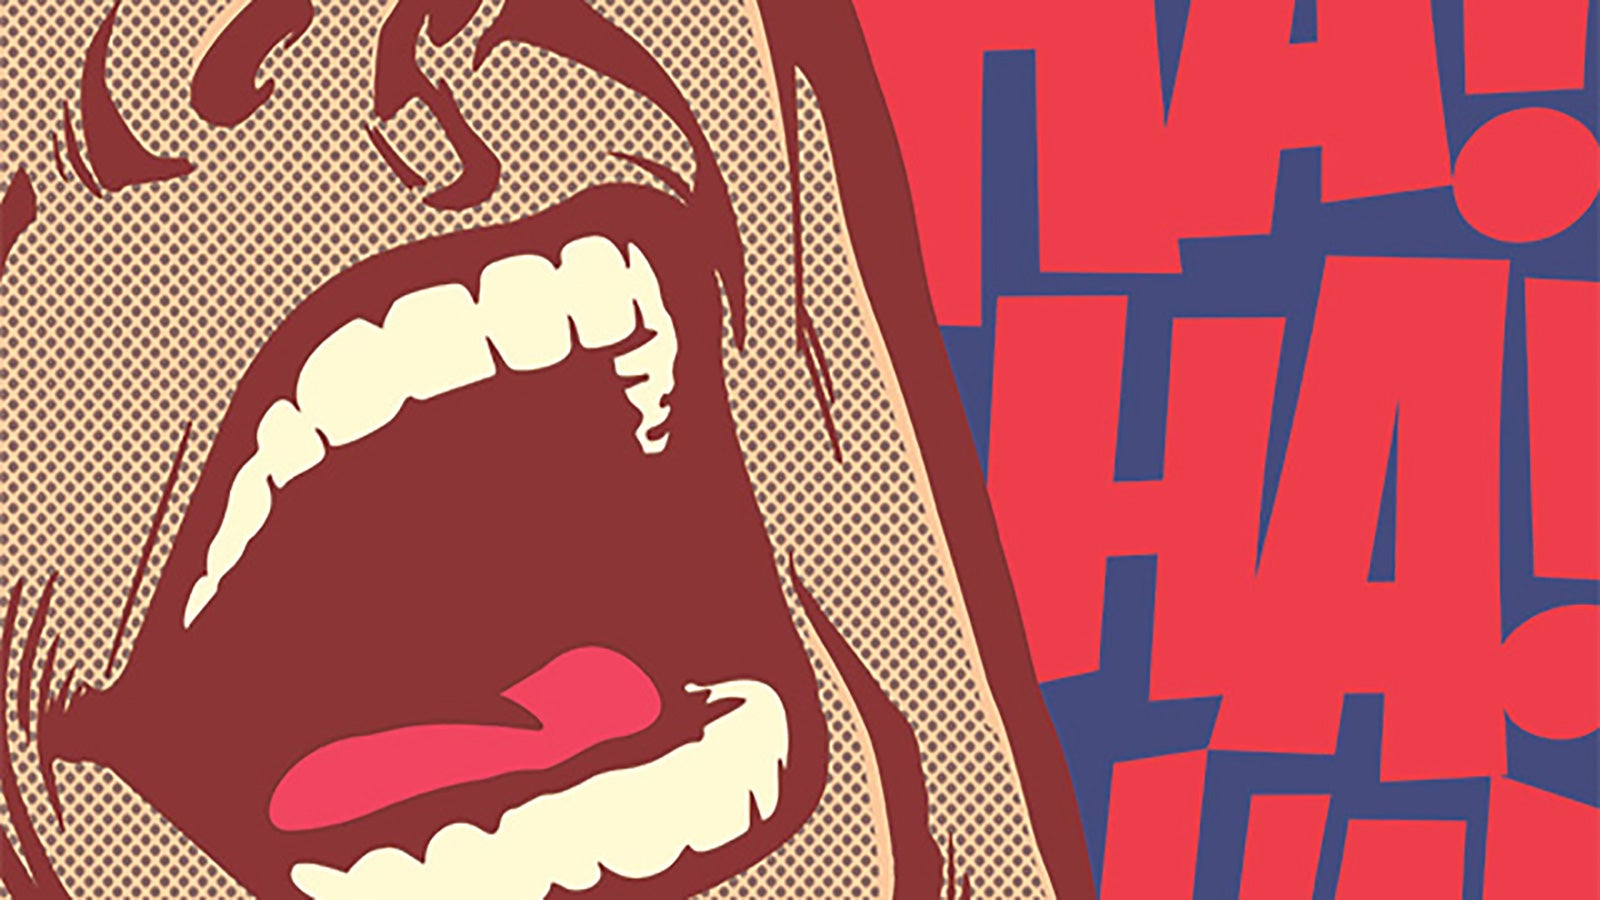 A pop-art style illustration of man laughing with the words 'HA! HA! HA!' emblazoned behind him.